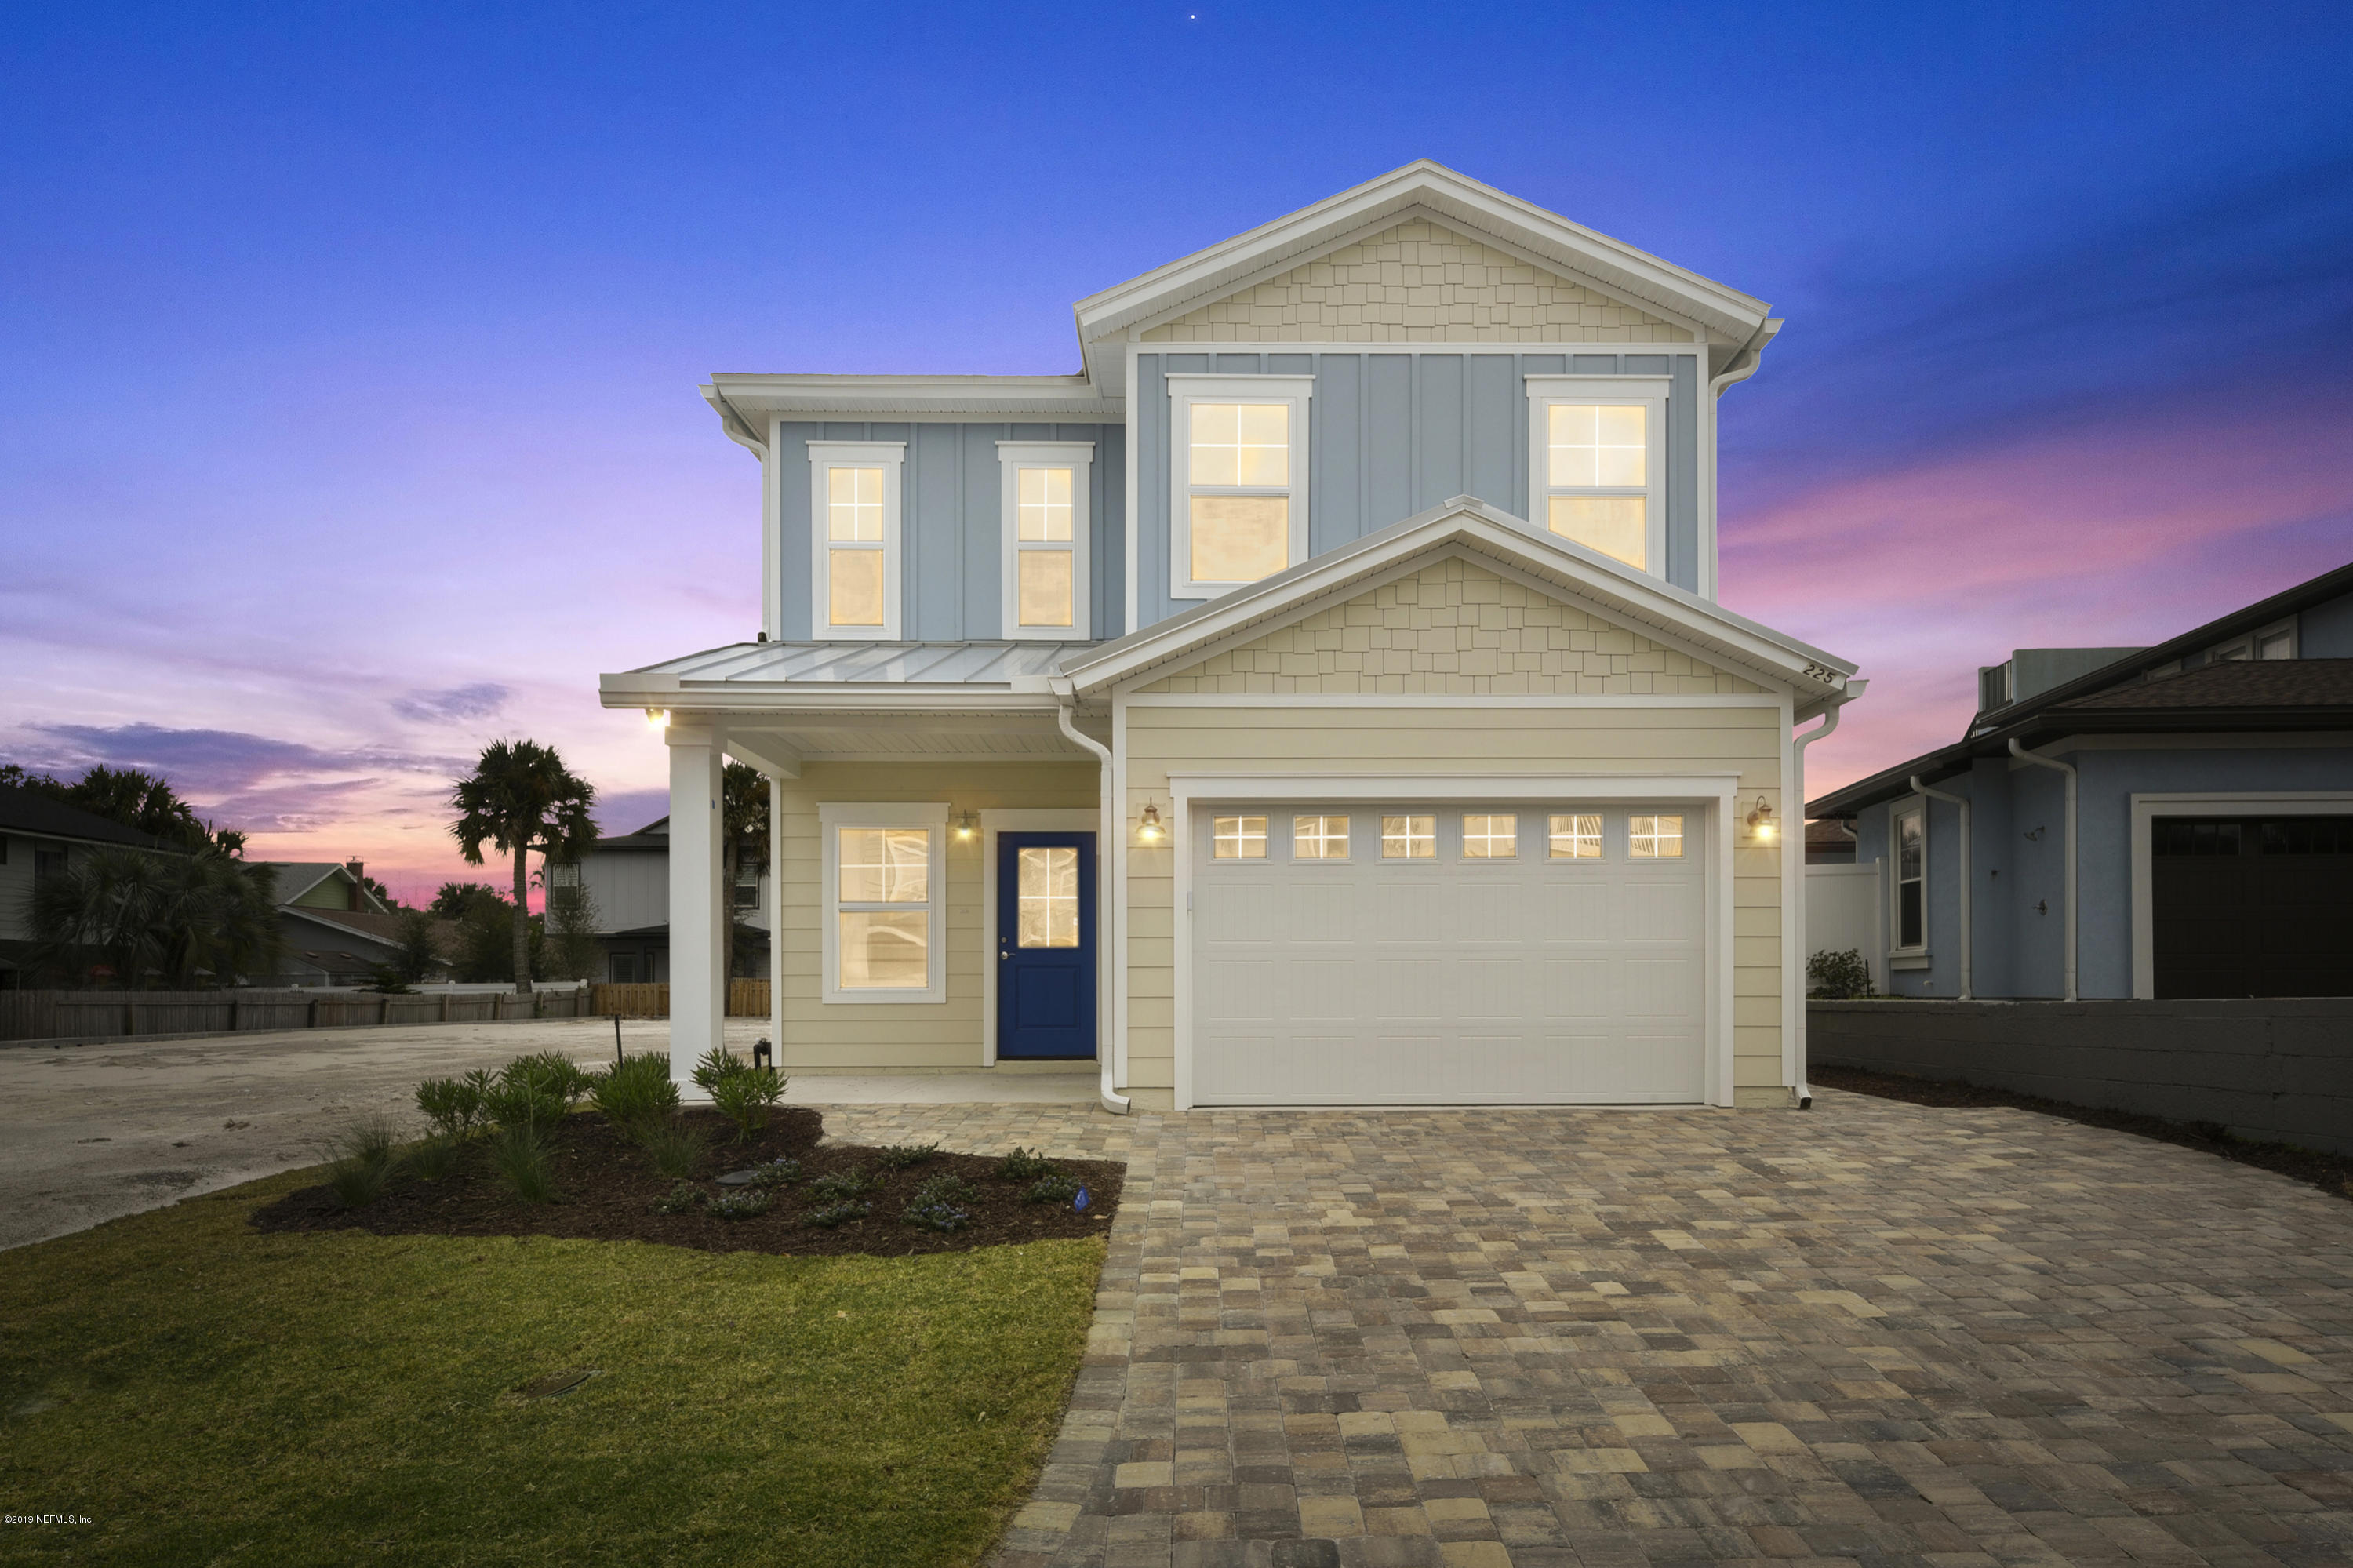 225 BOWLES, NEPTUNE BEACH, FLORIDA 32266, 4 Bedrooms Bedrooms, ,2 BathroomsBathrooms,Residential - single family,For sale,BOWLES,977595